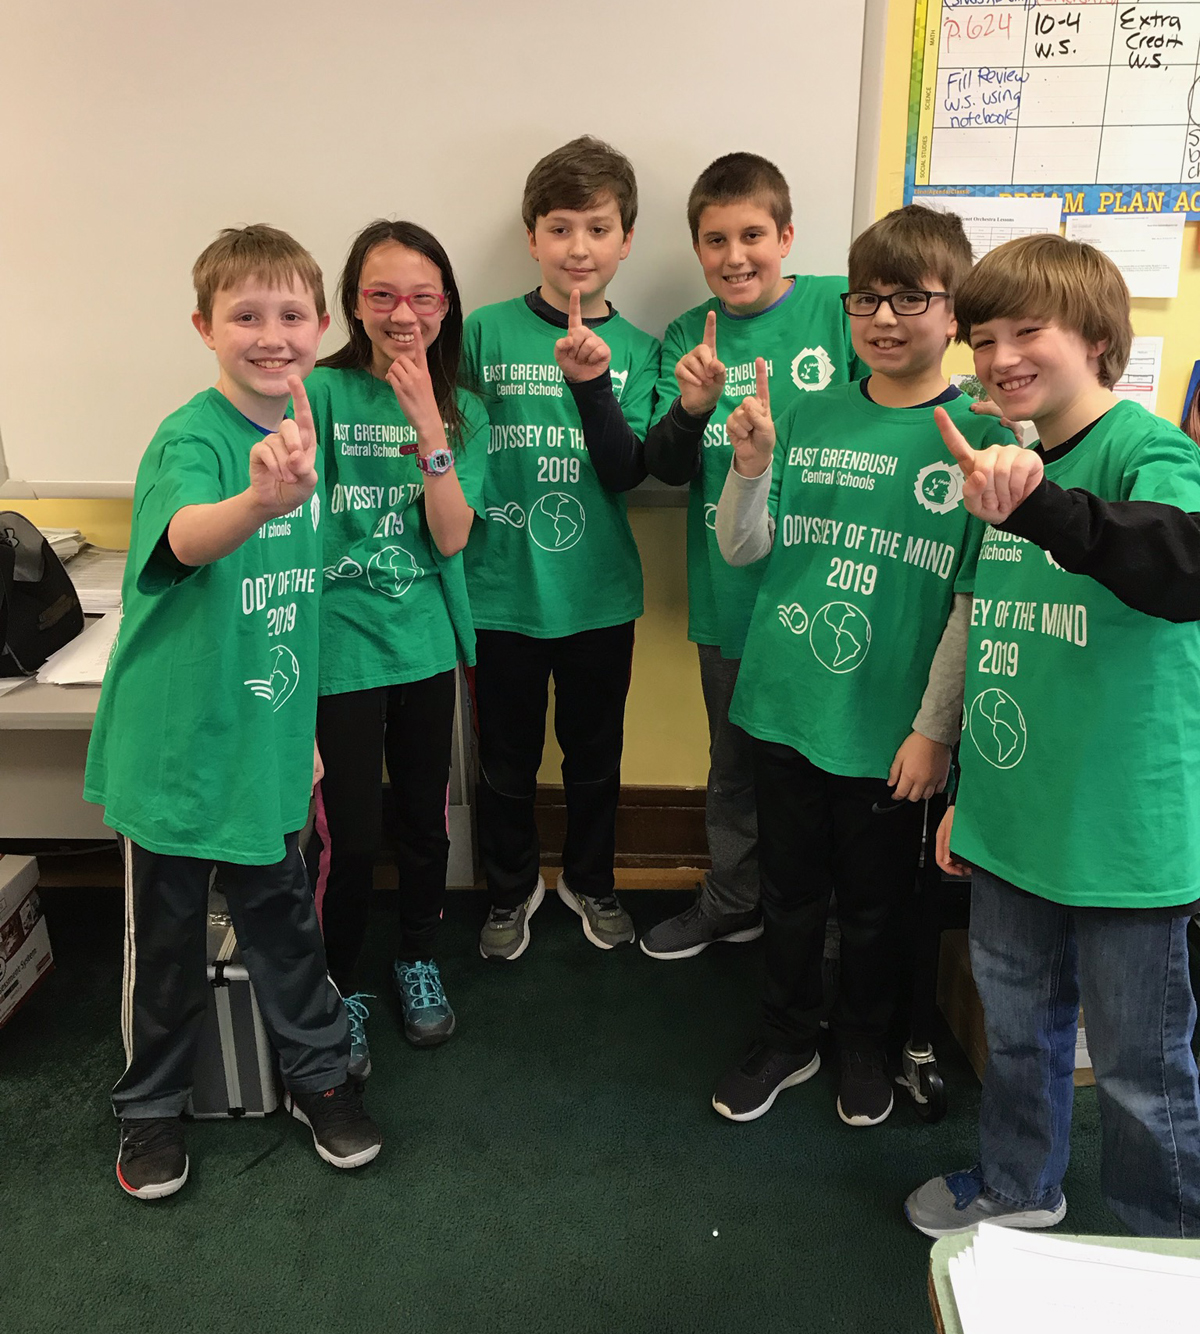 Genet students at Odyssey of the Mind competition